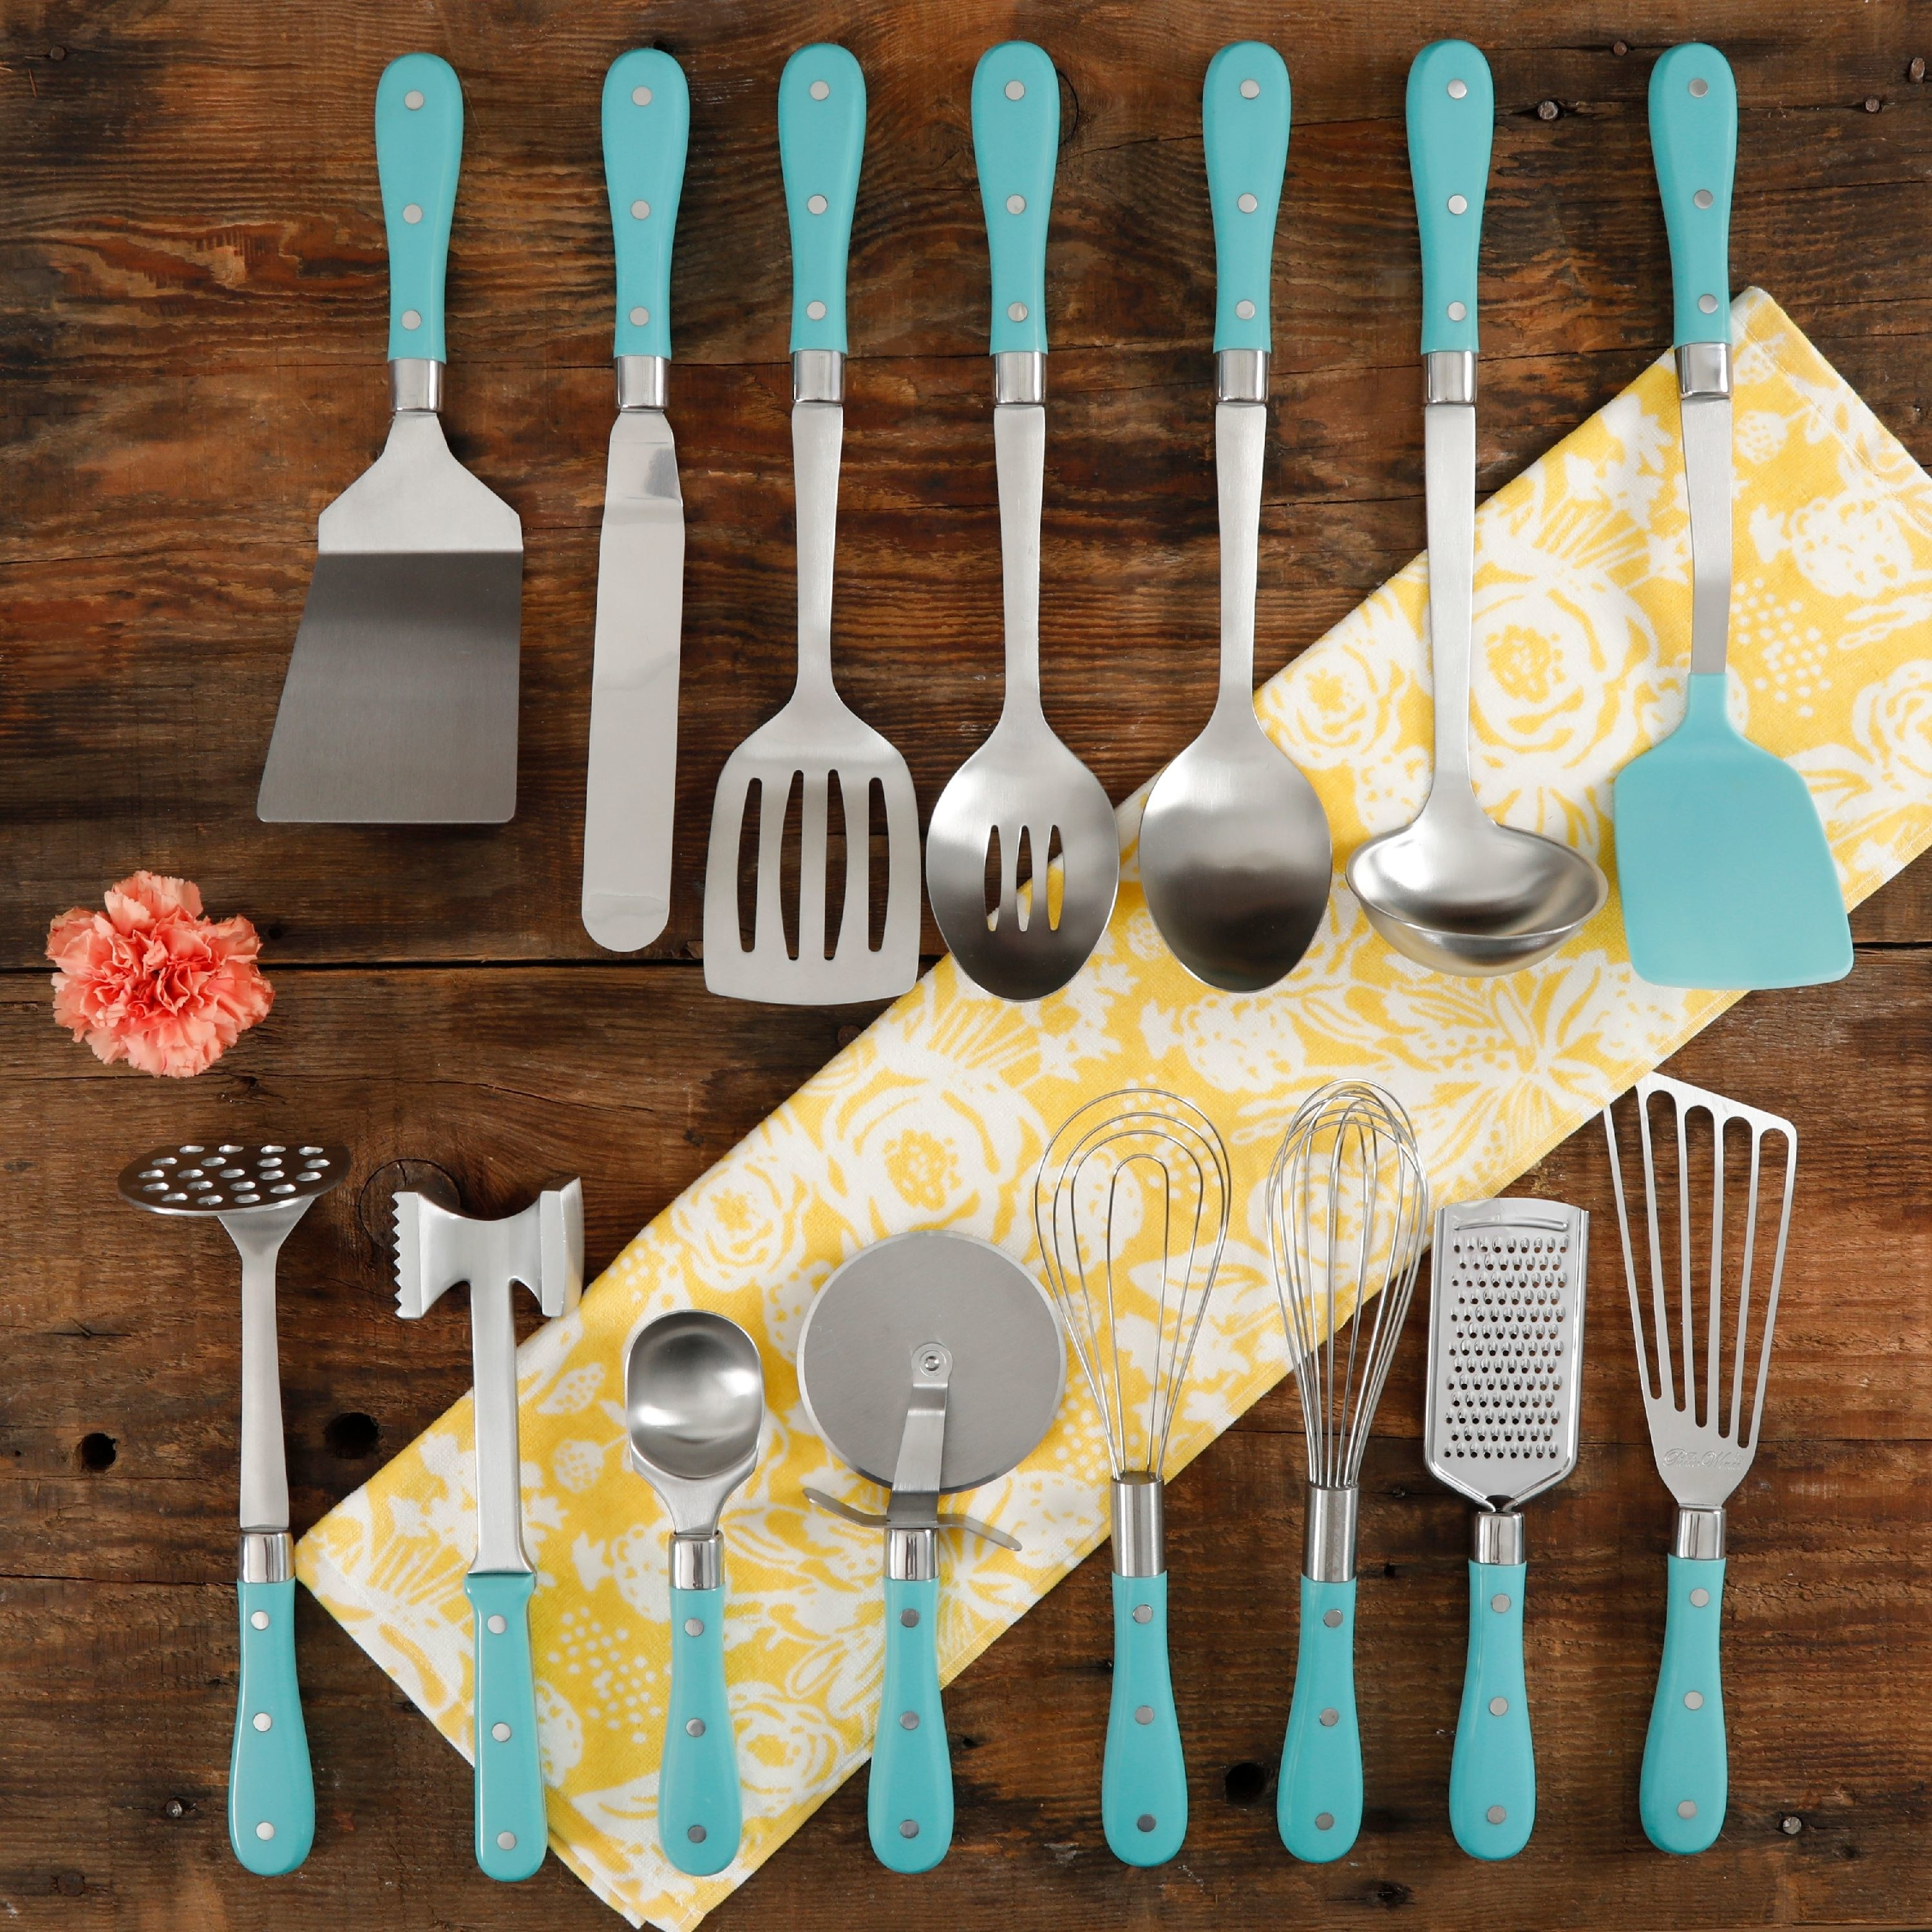 All 15 tools and gadgets with turquoise handles